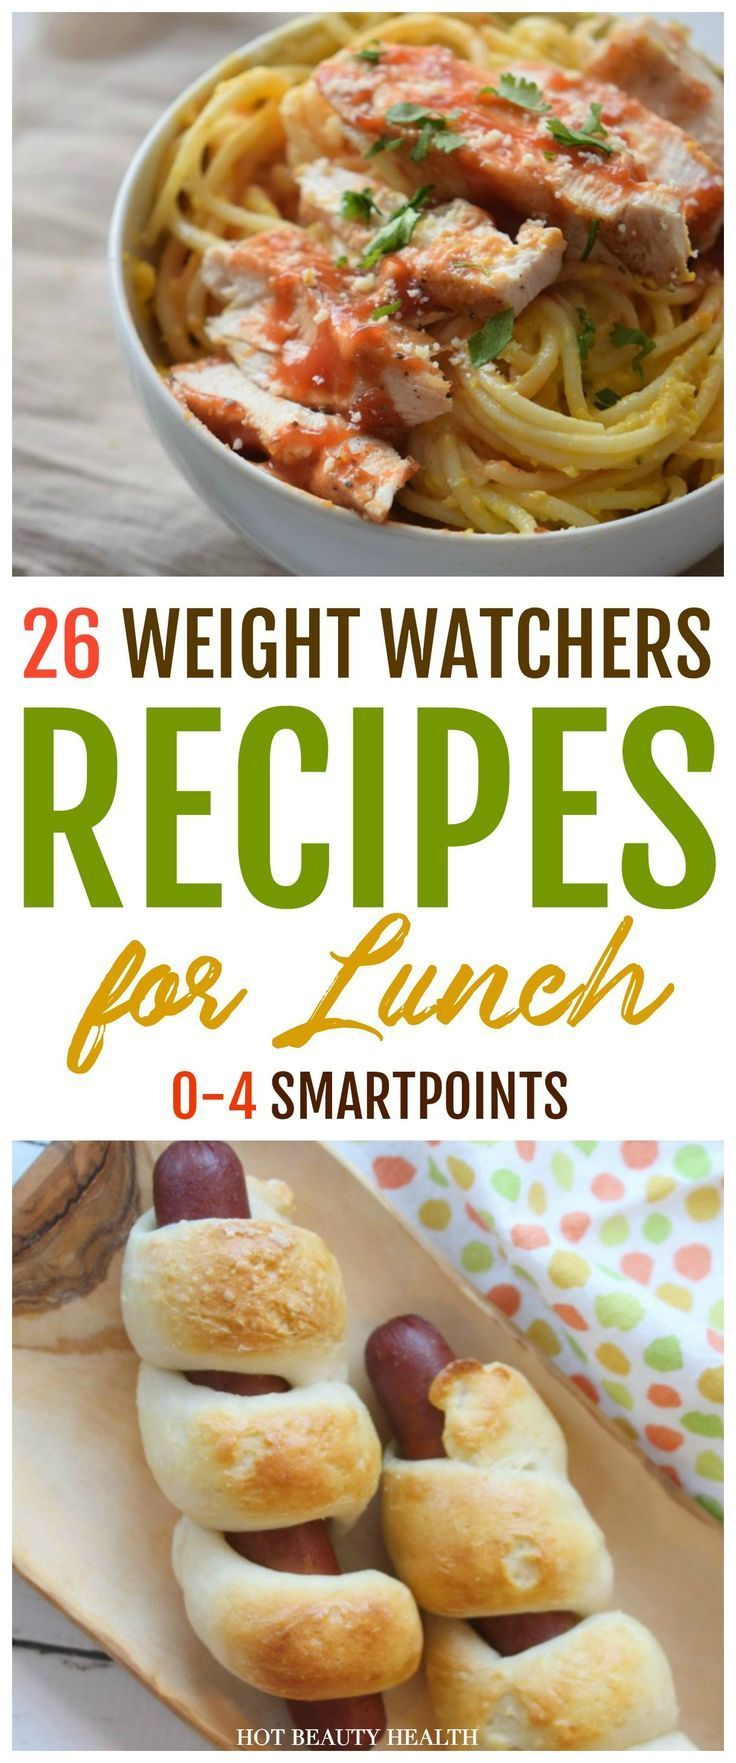 The Best Weight Watchers Lunches With Smart Points images